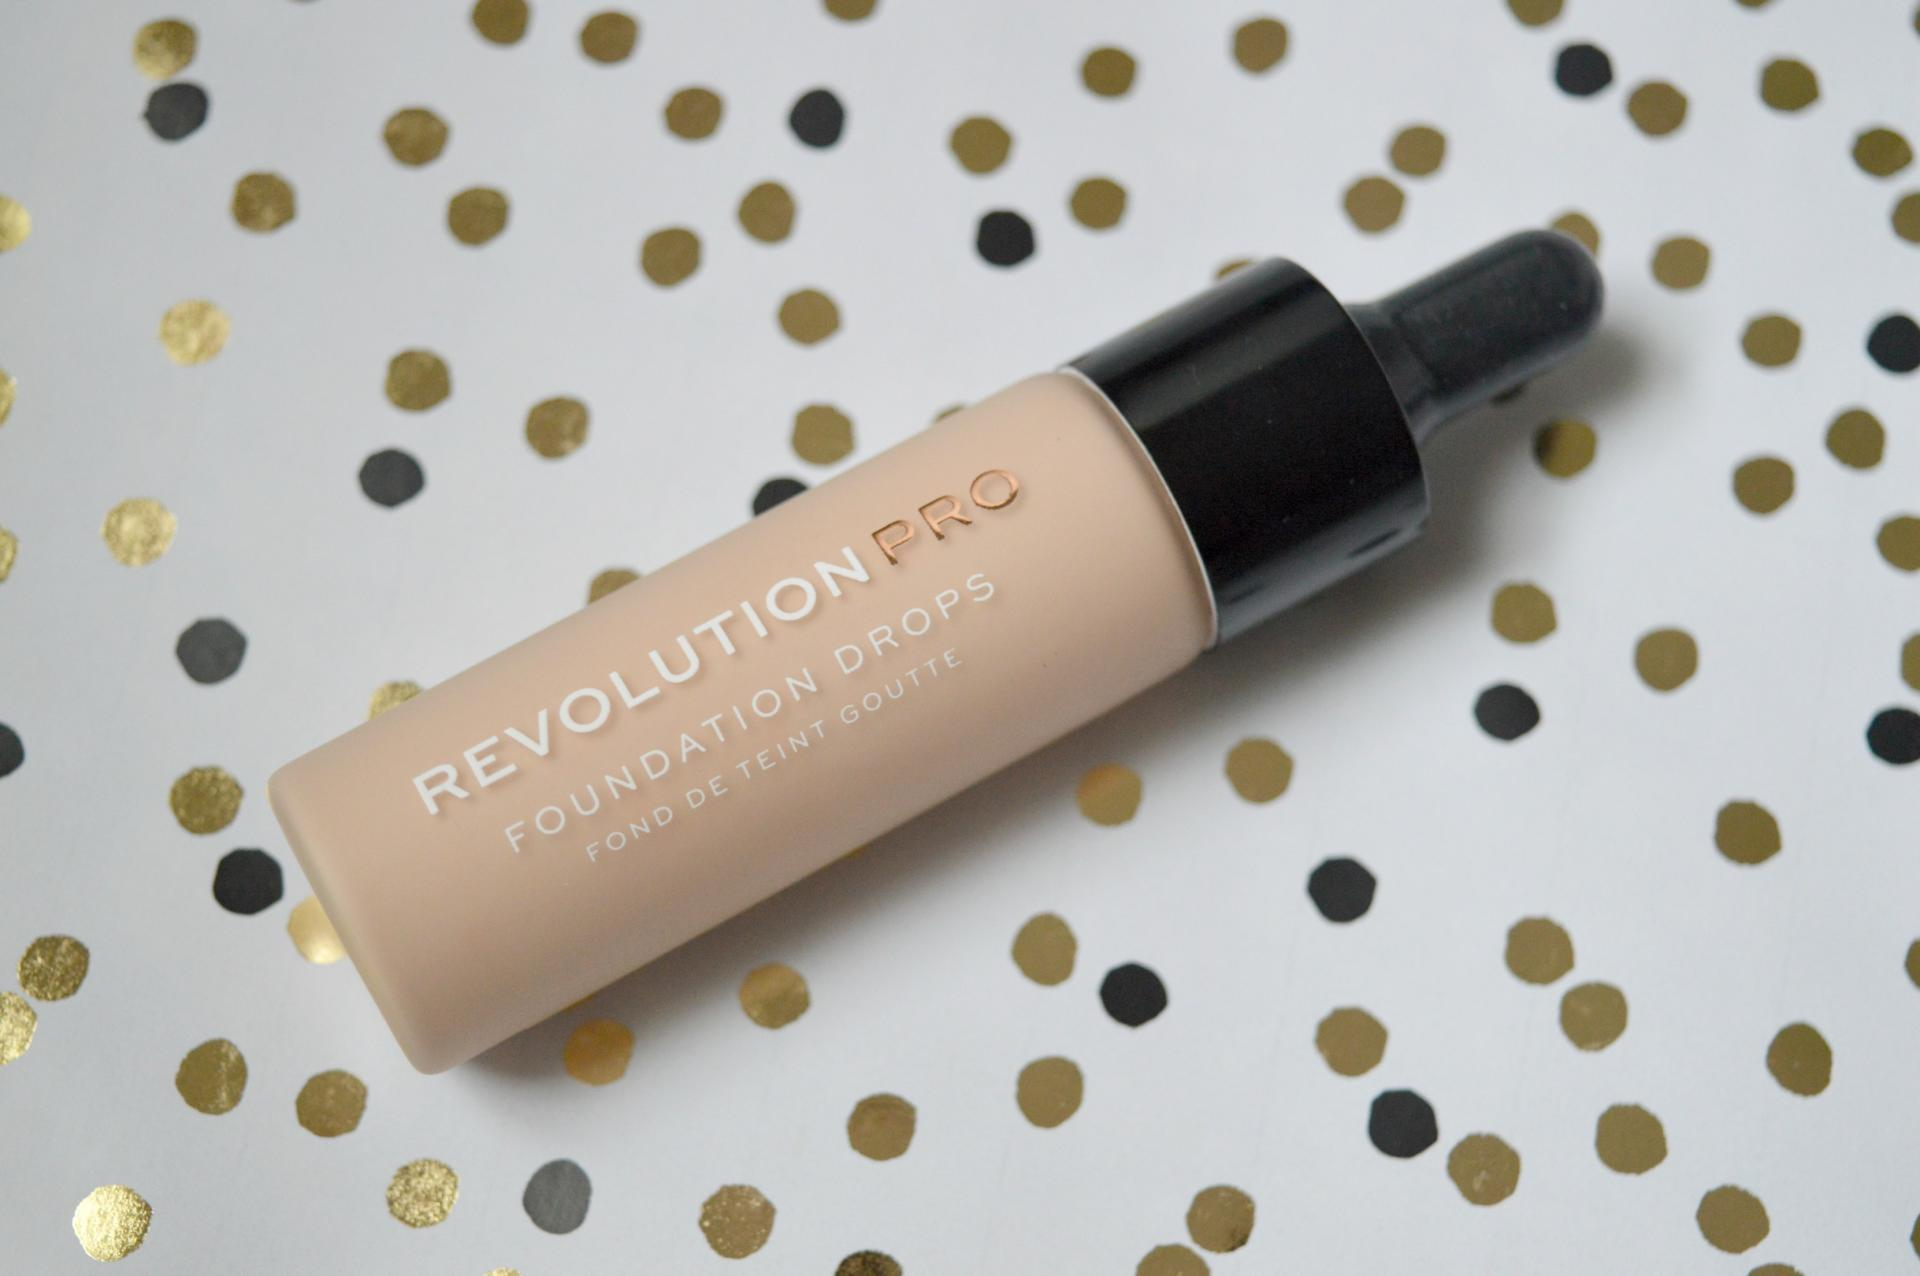 How Good Are The Revolution Pro Foundation Drops?